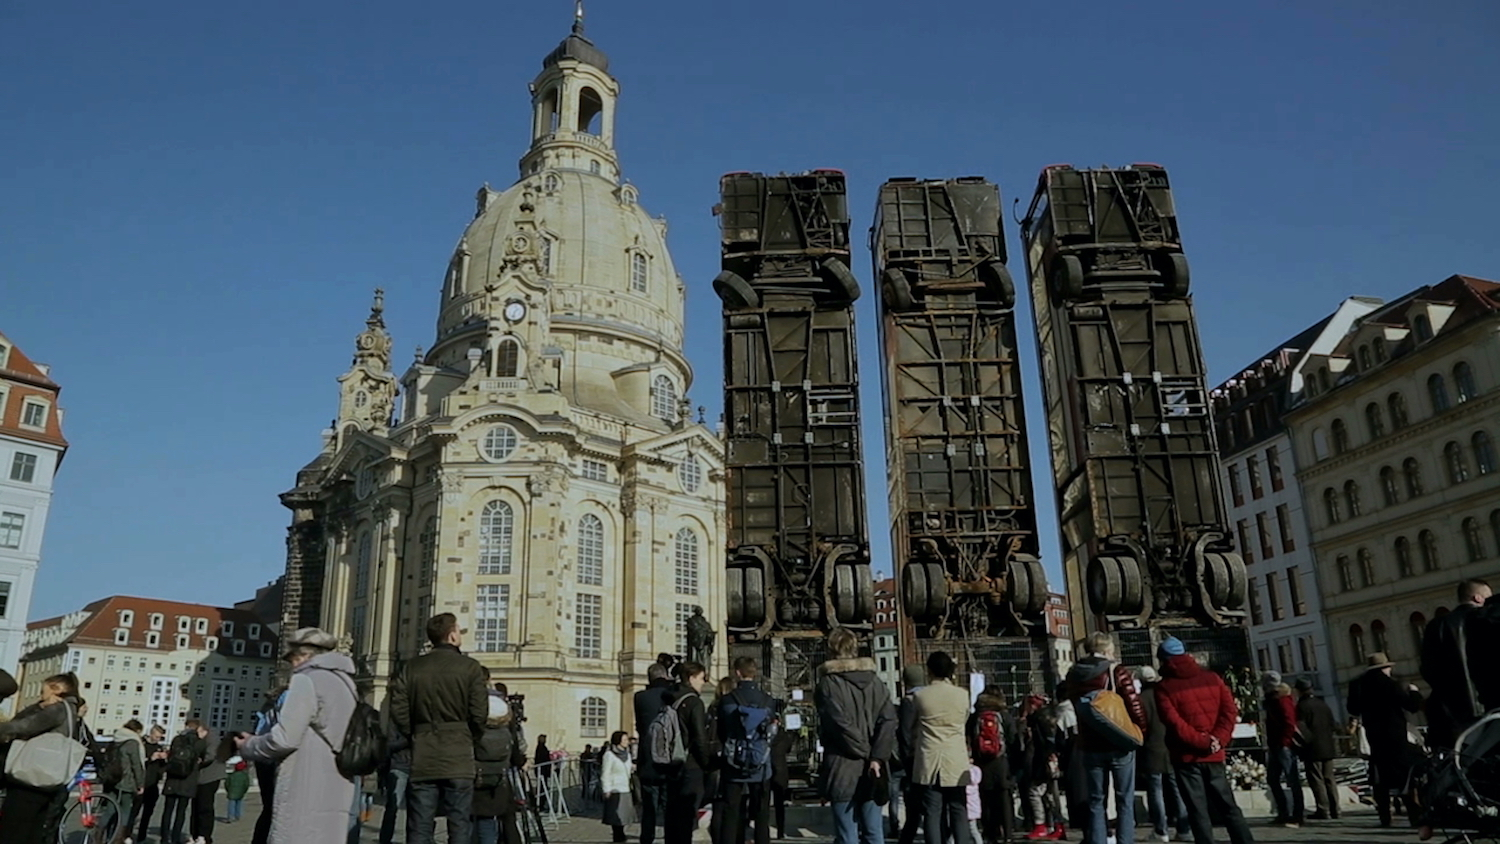 People crowd a plaza in Dresden where three busses are propped up to stand tall in the sky.